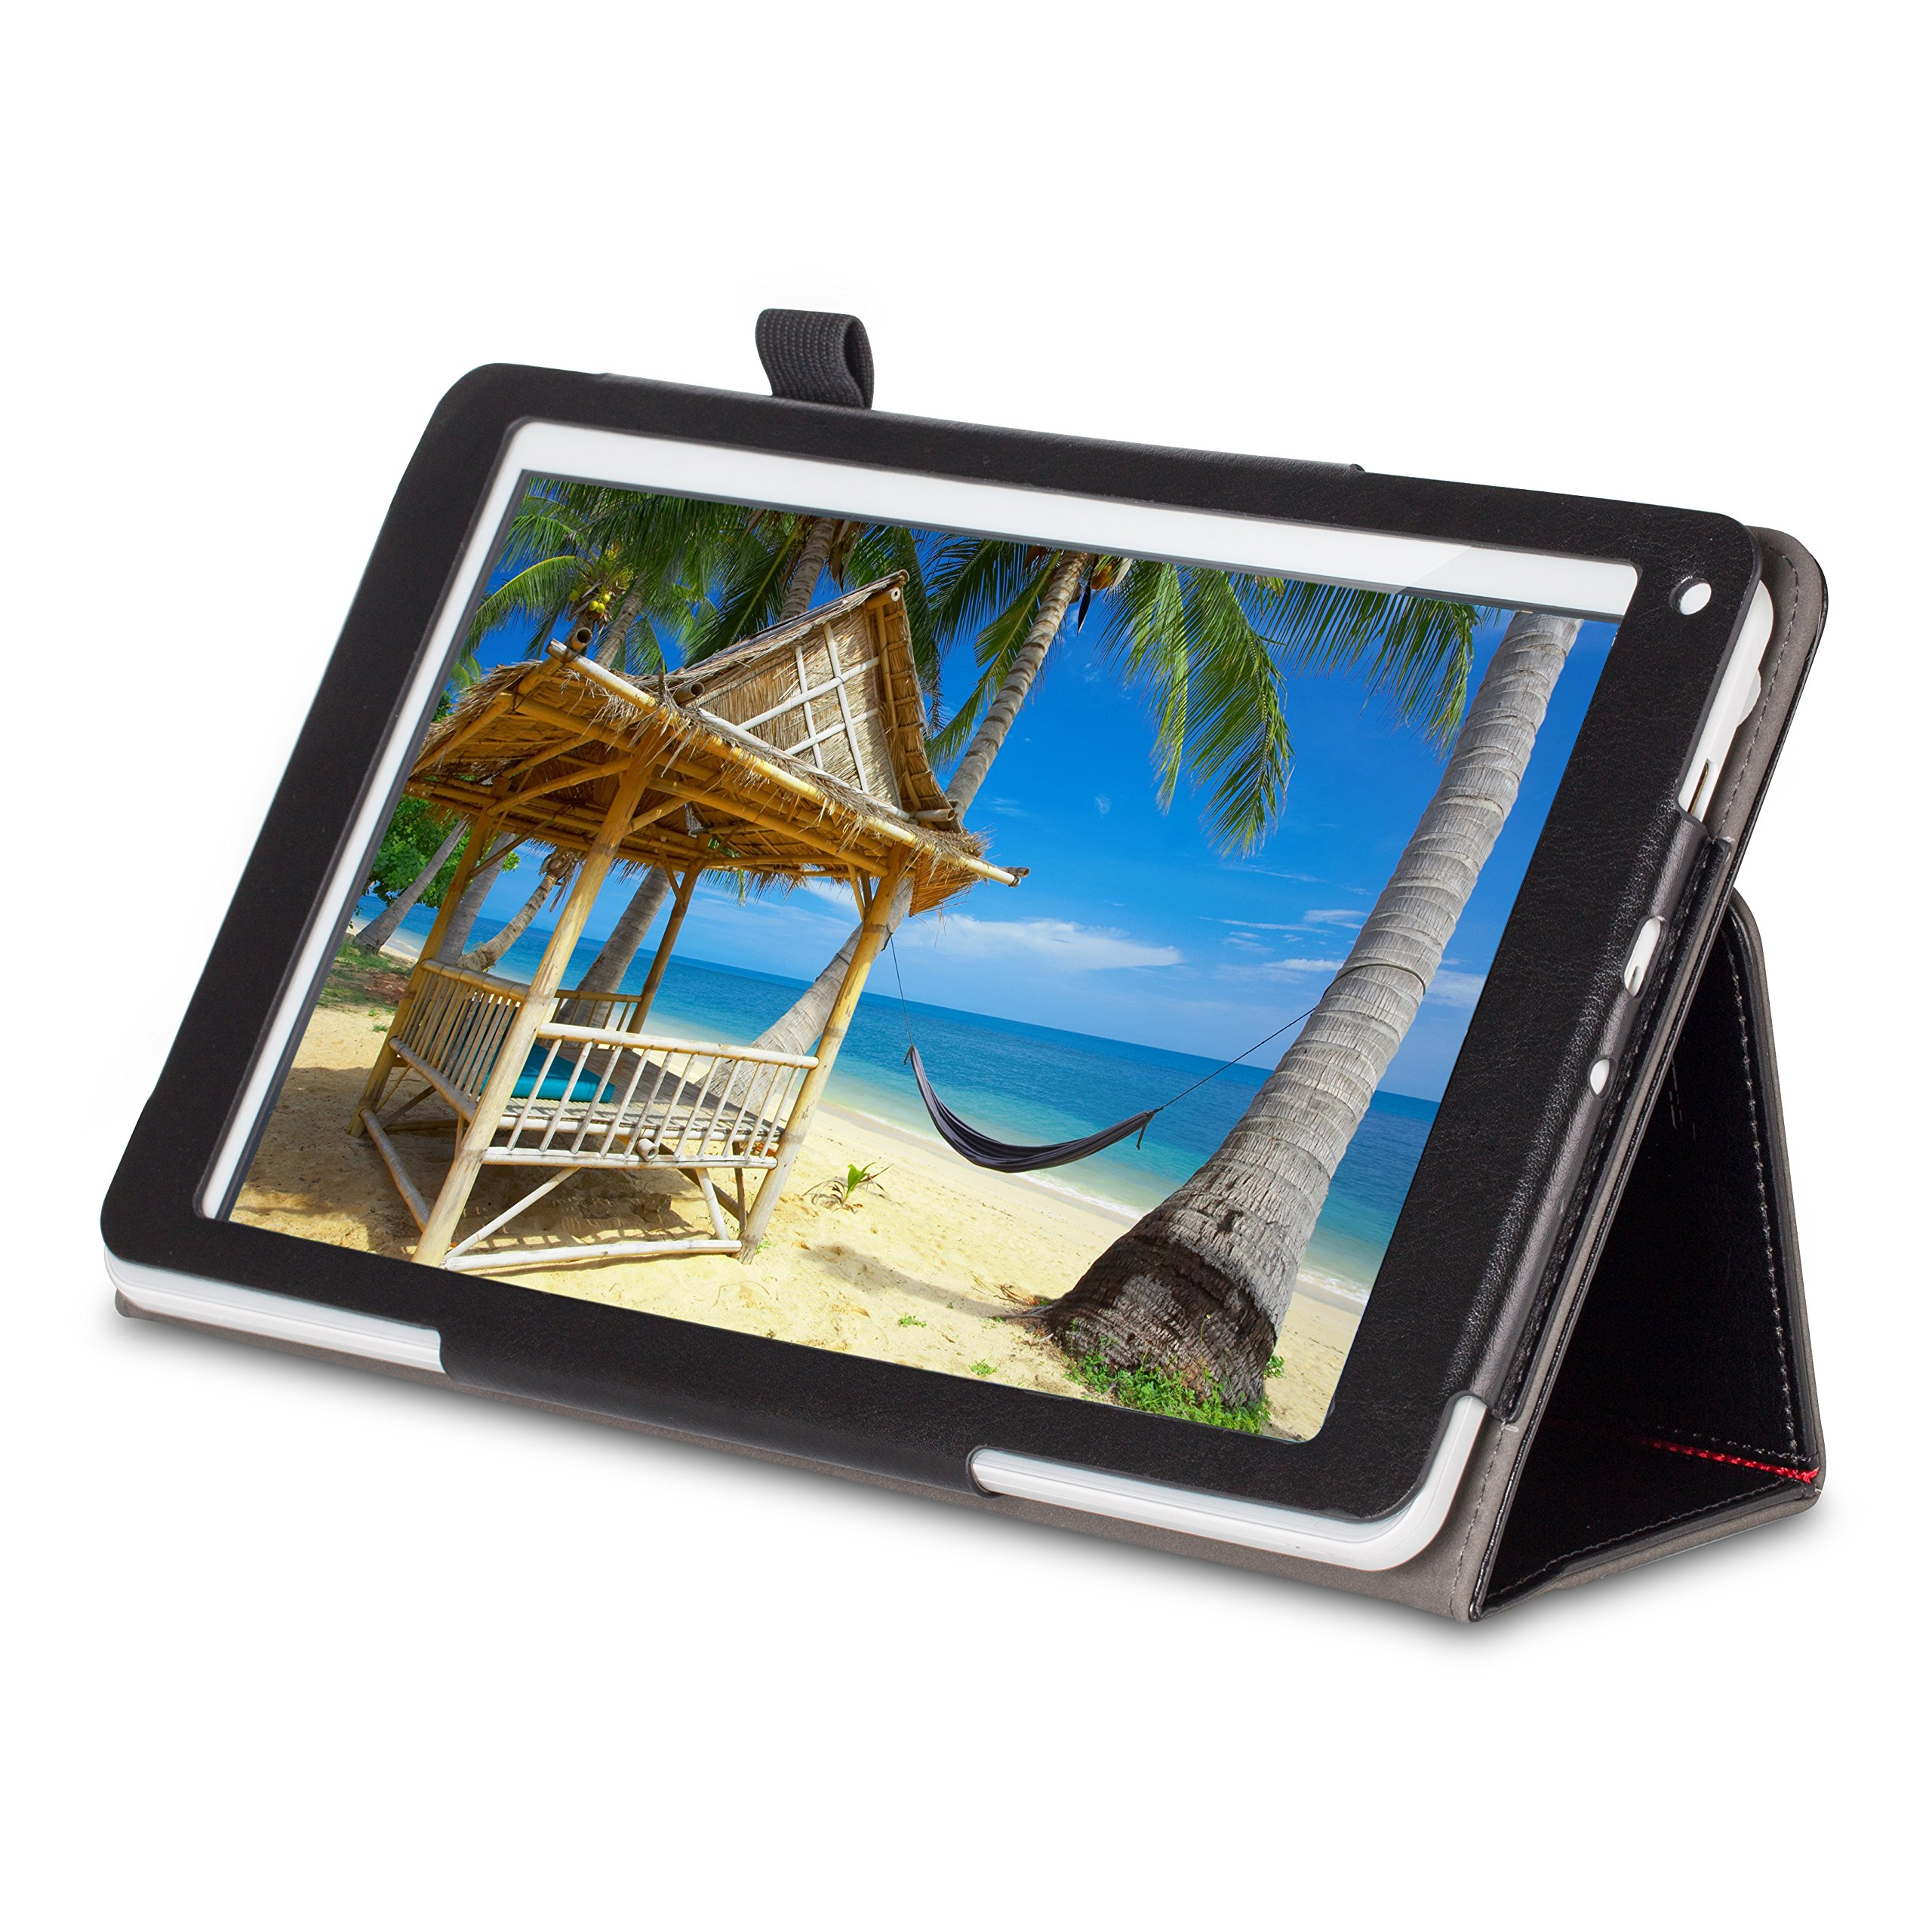 ddd4b72110b75 Get Quotations ·  3 Bonus Items  Simbans Presto 10 Inch Tablet